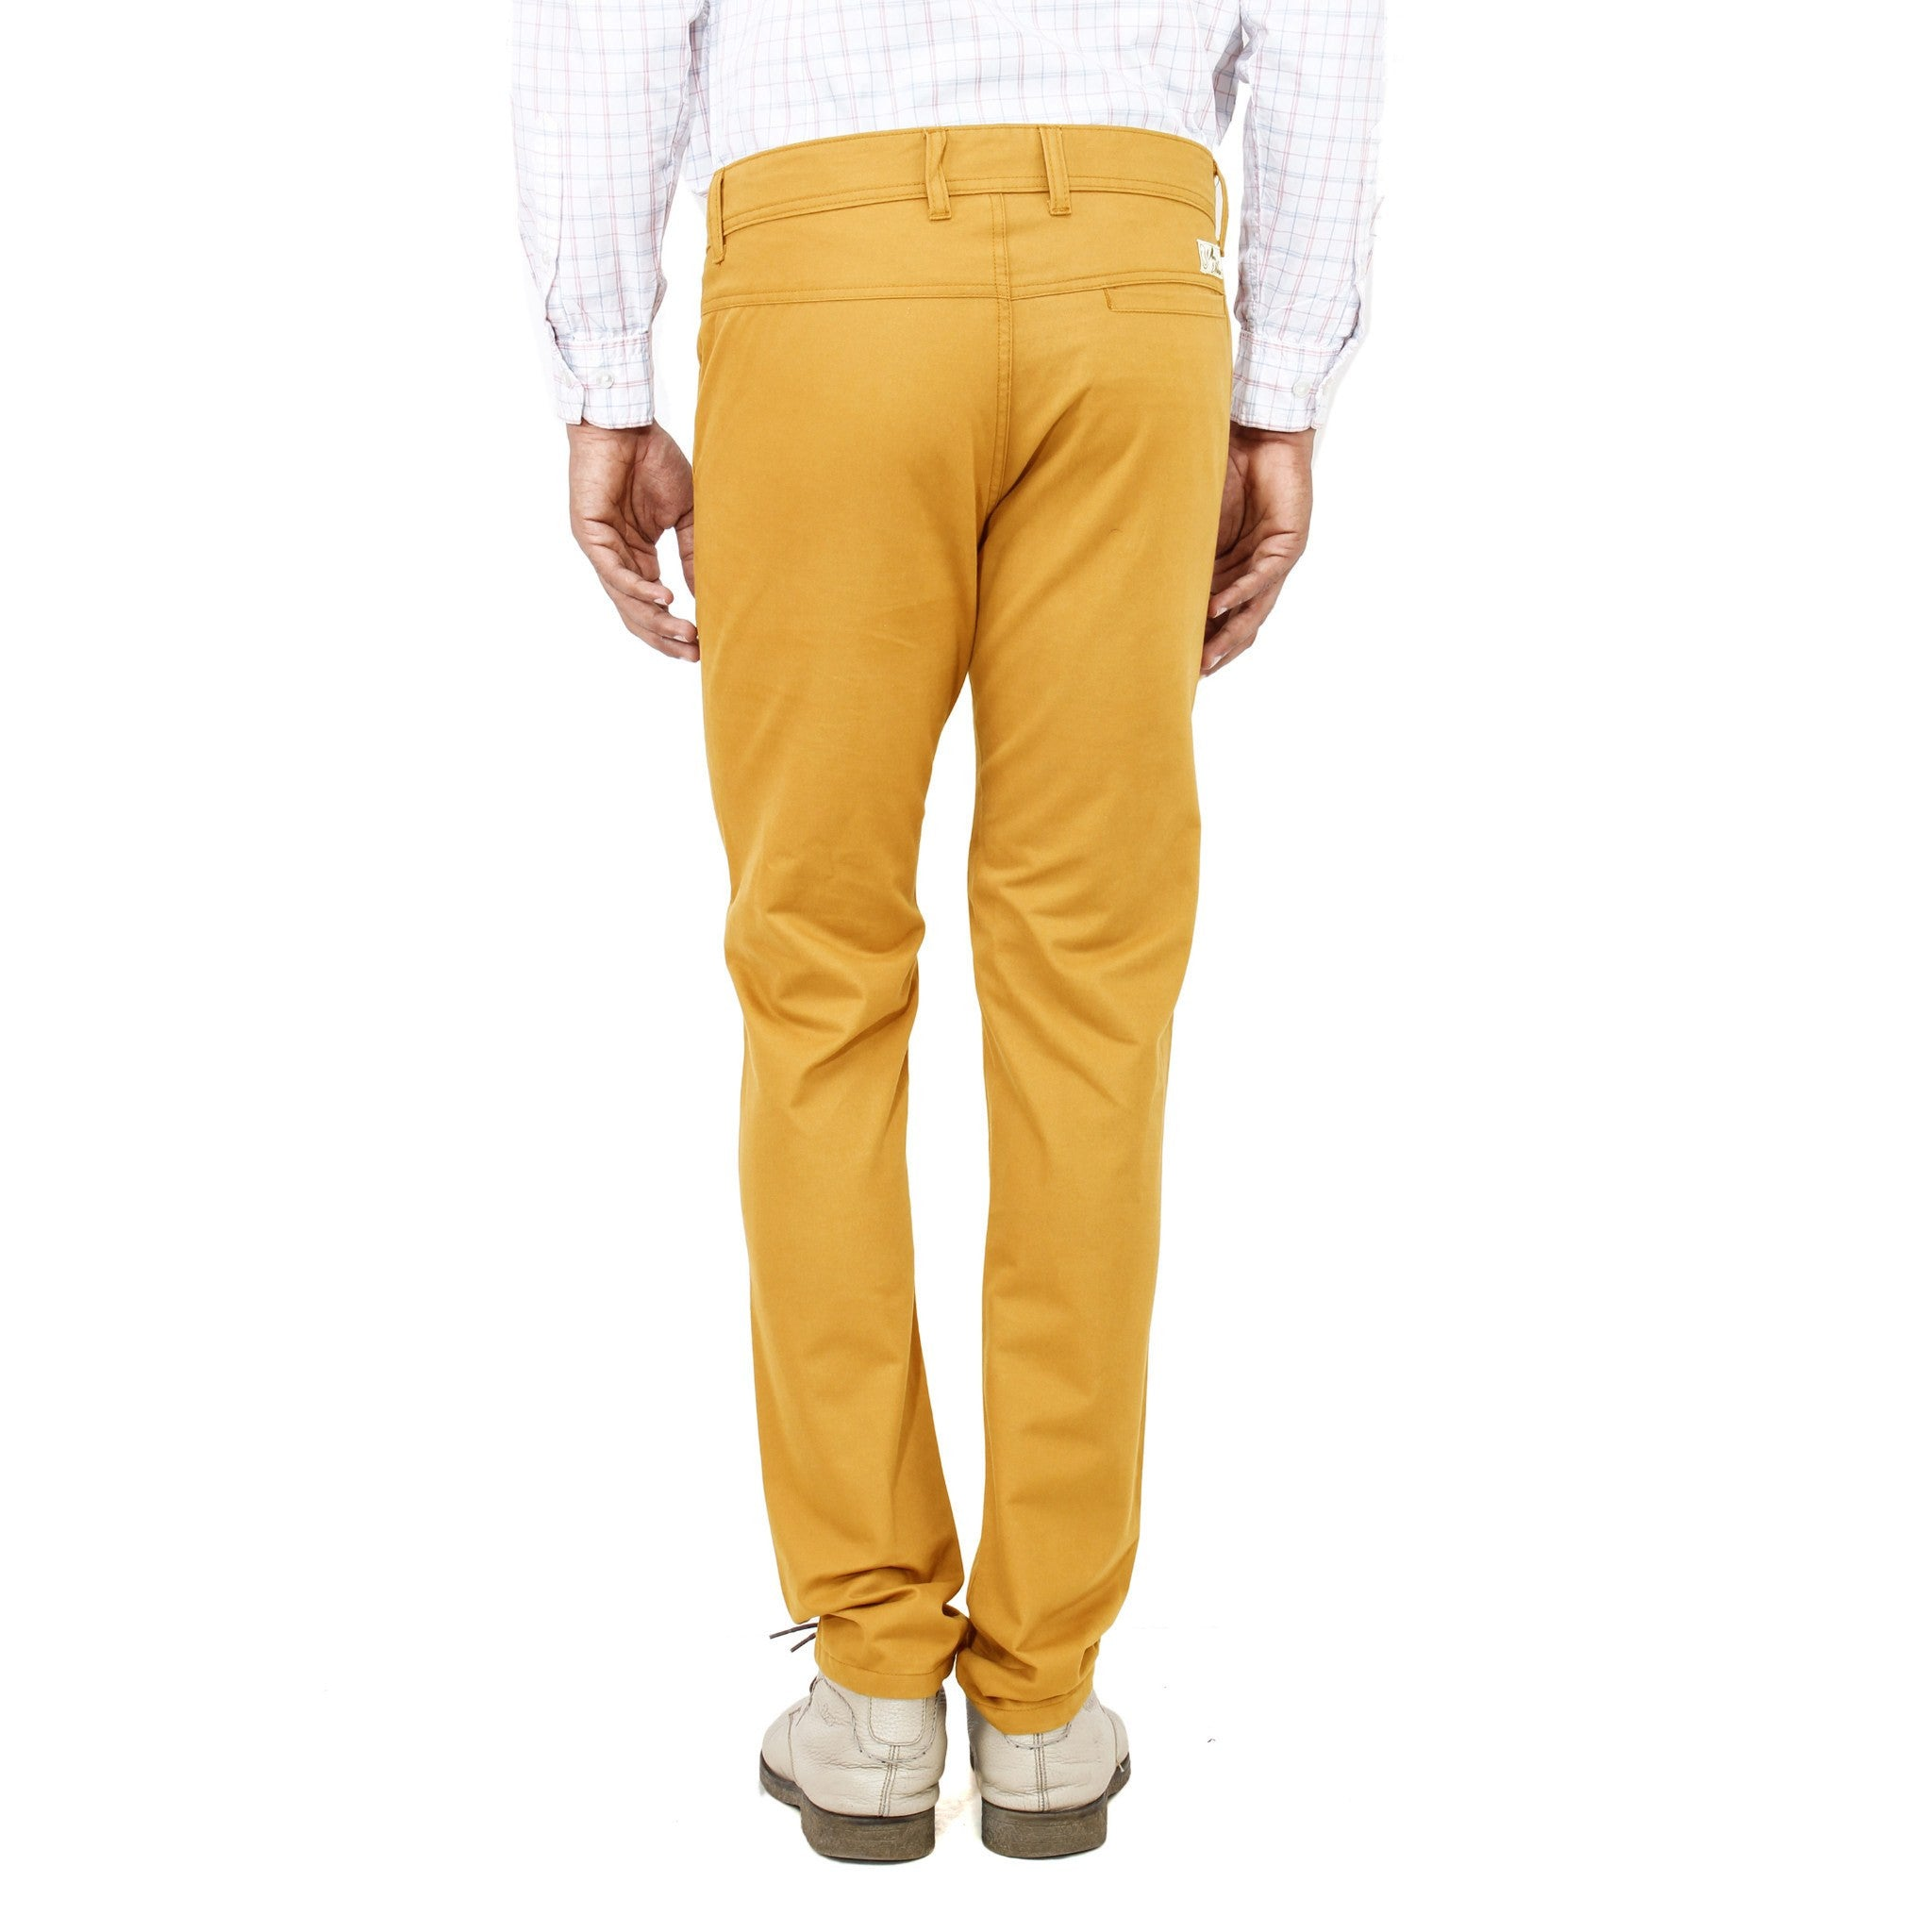 Uber Golden Yellow Rocky Trouser back view